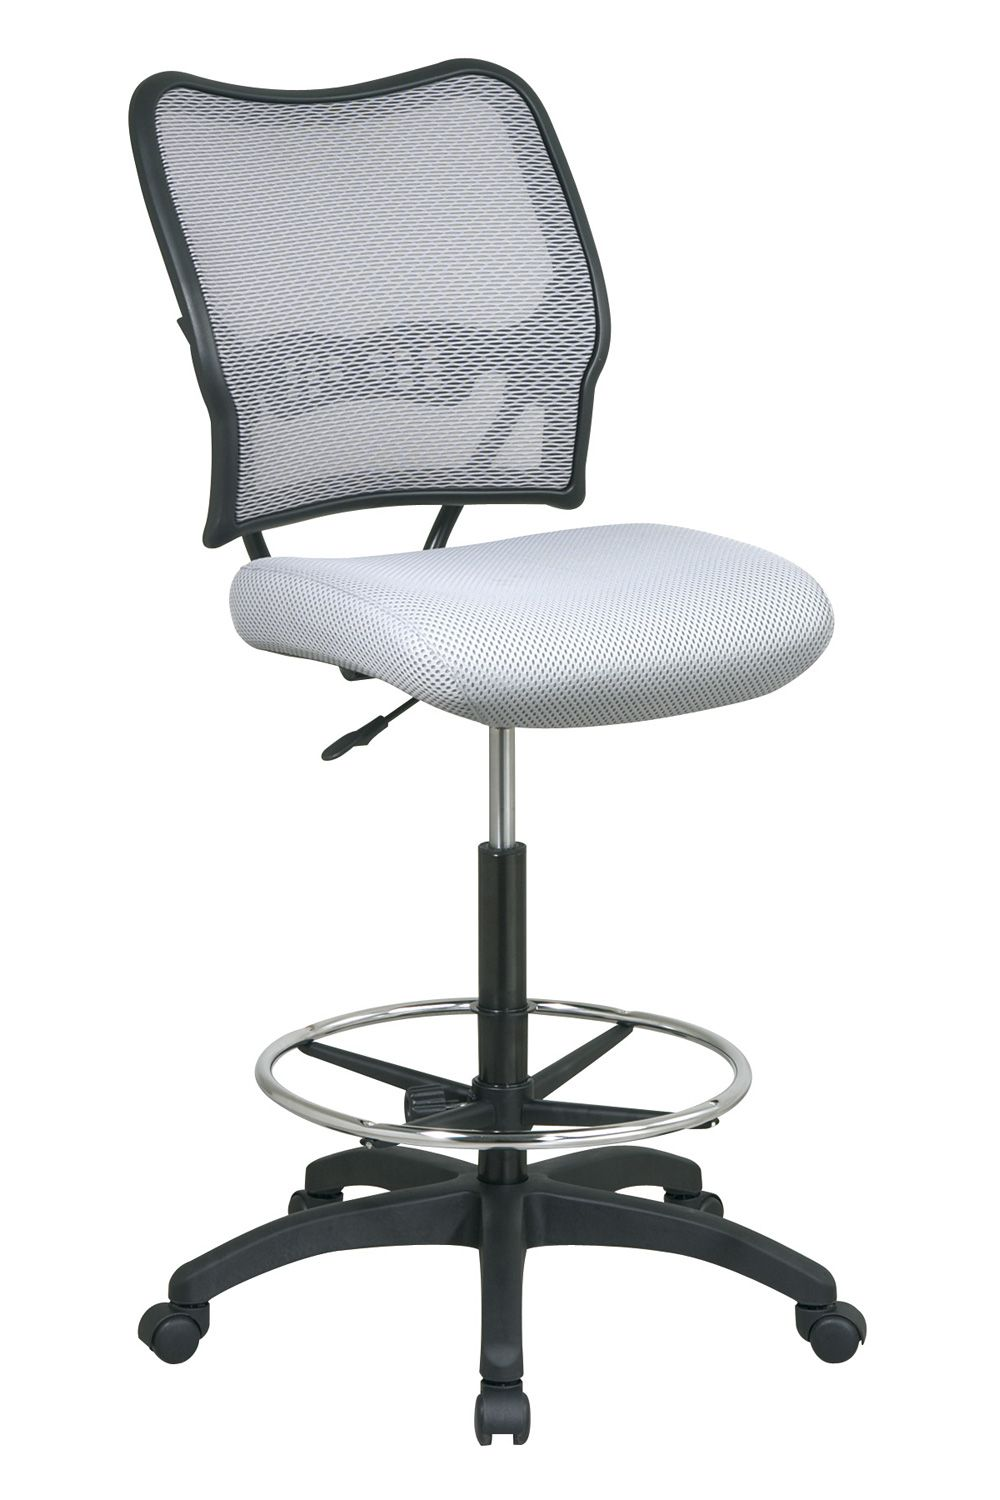 Another Drafting Chair Example The Chair Must Look Cute D Drafting Chair Chair Kneeling Chair